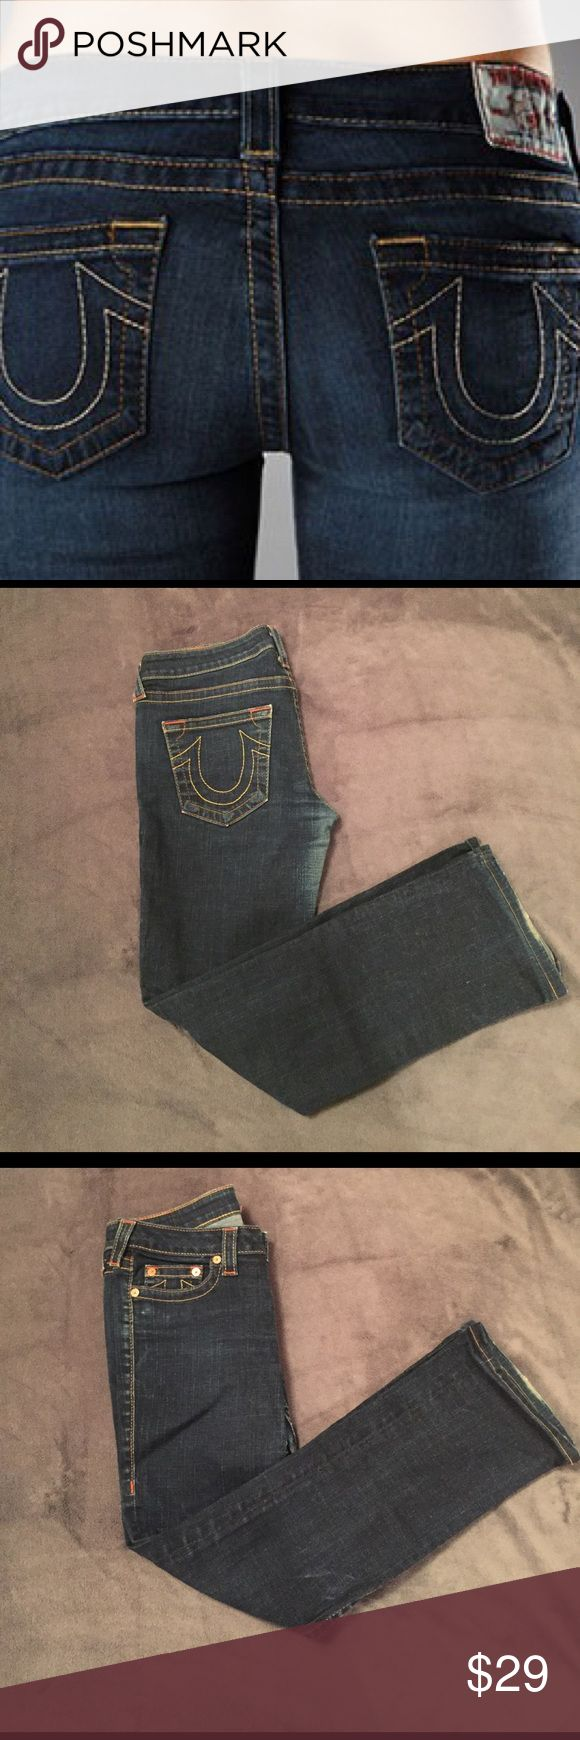 True Religion Jeans True Religion Jeans. Some wear in between the thighs but still have a lot of life left! Low waist flair style.  29 inch inseam True Religion Pants